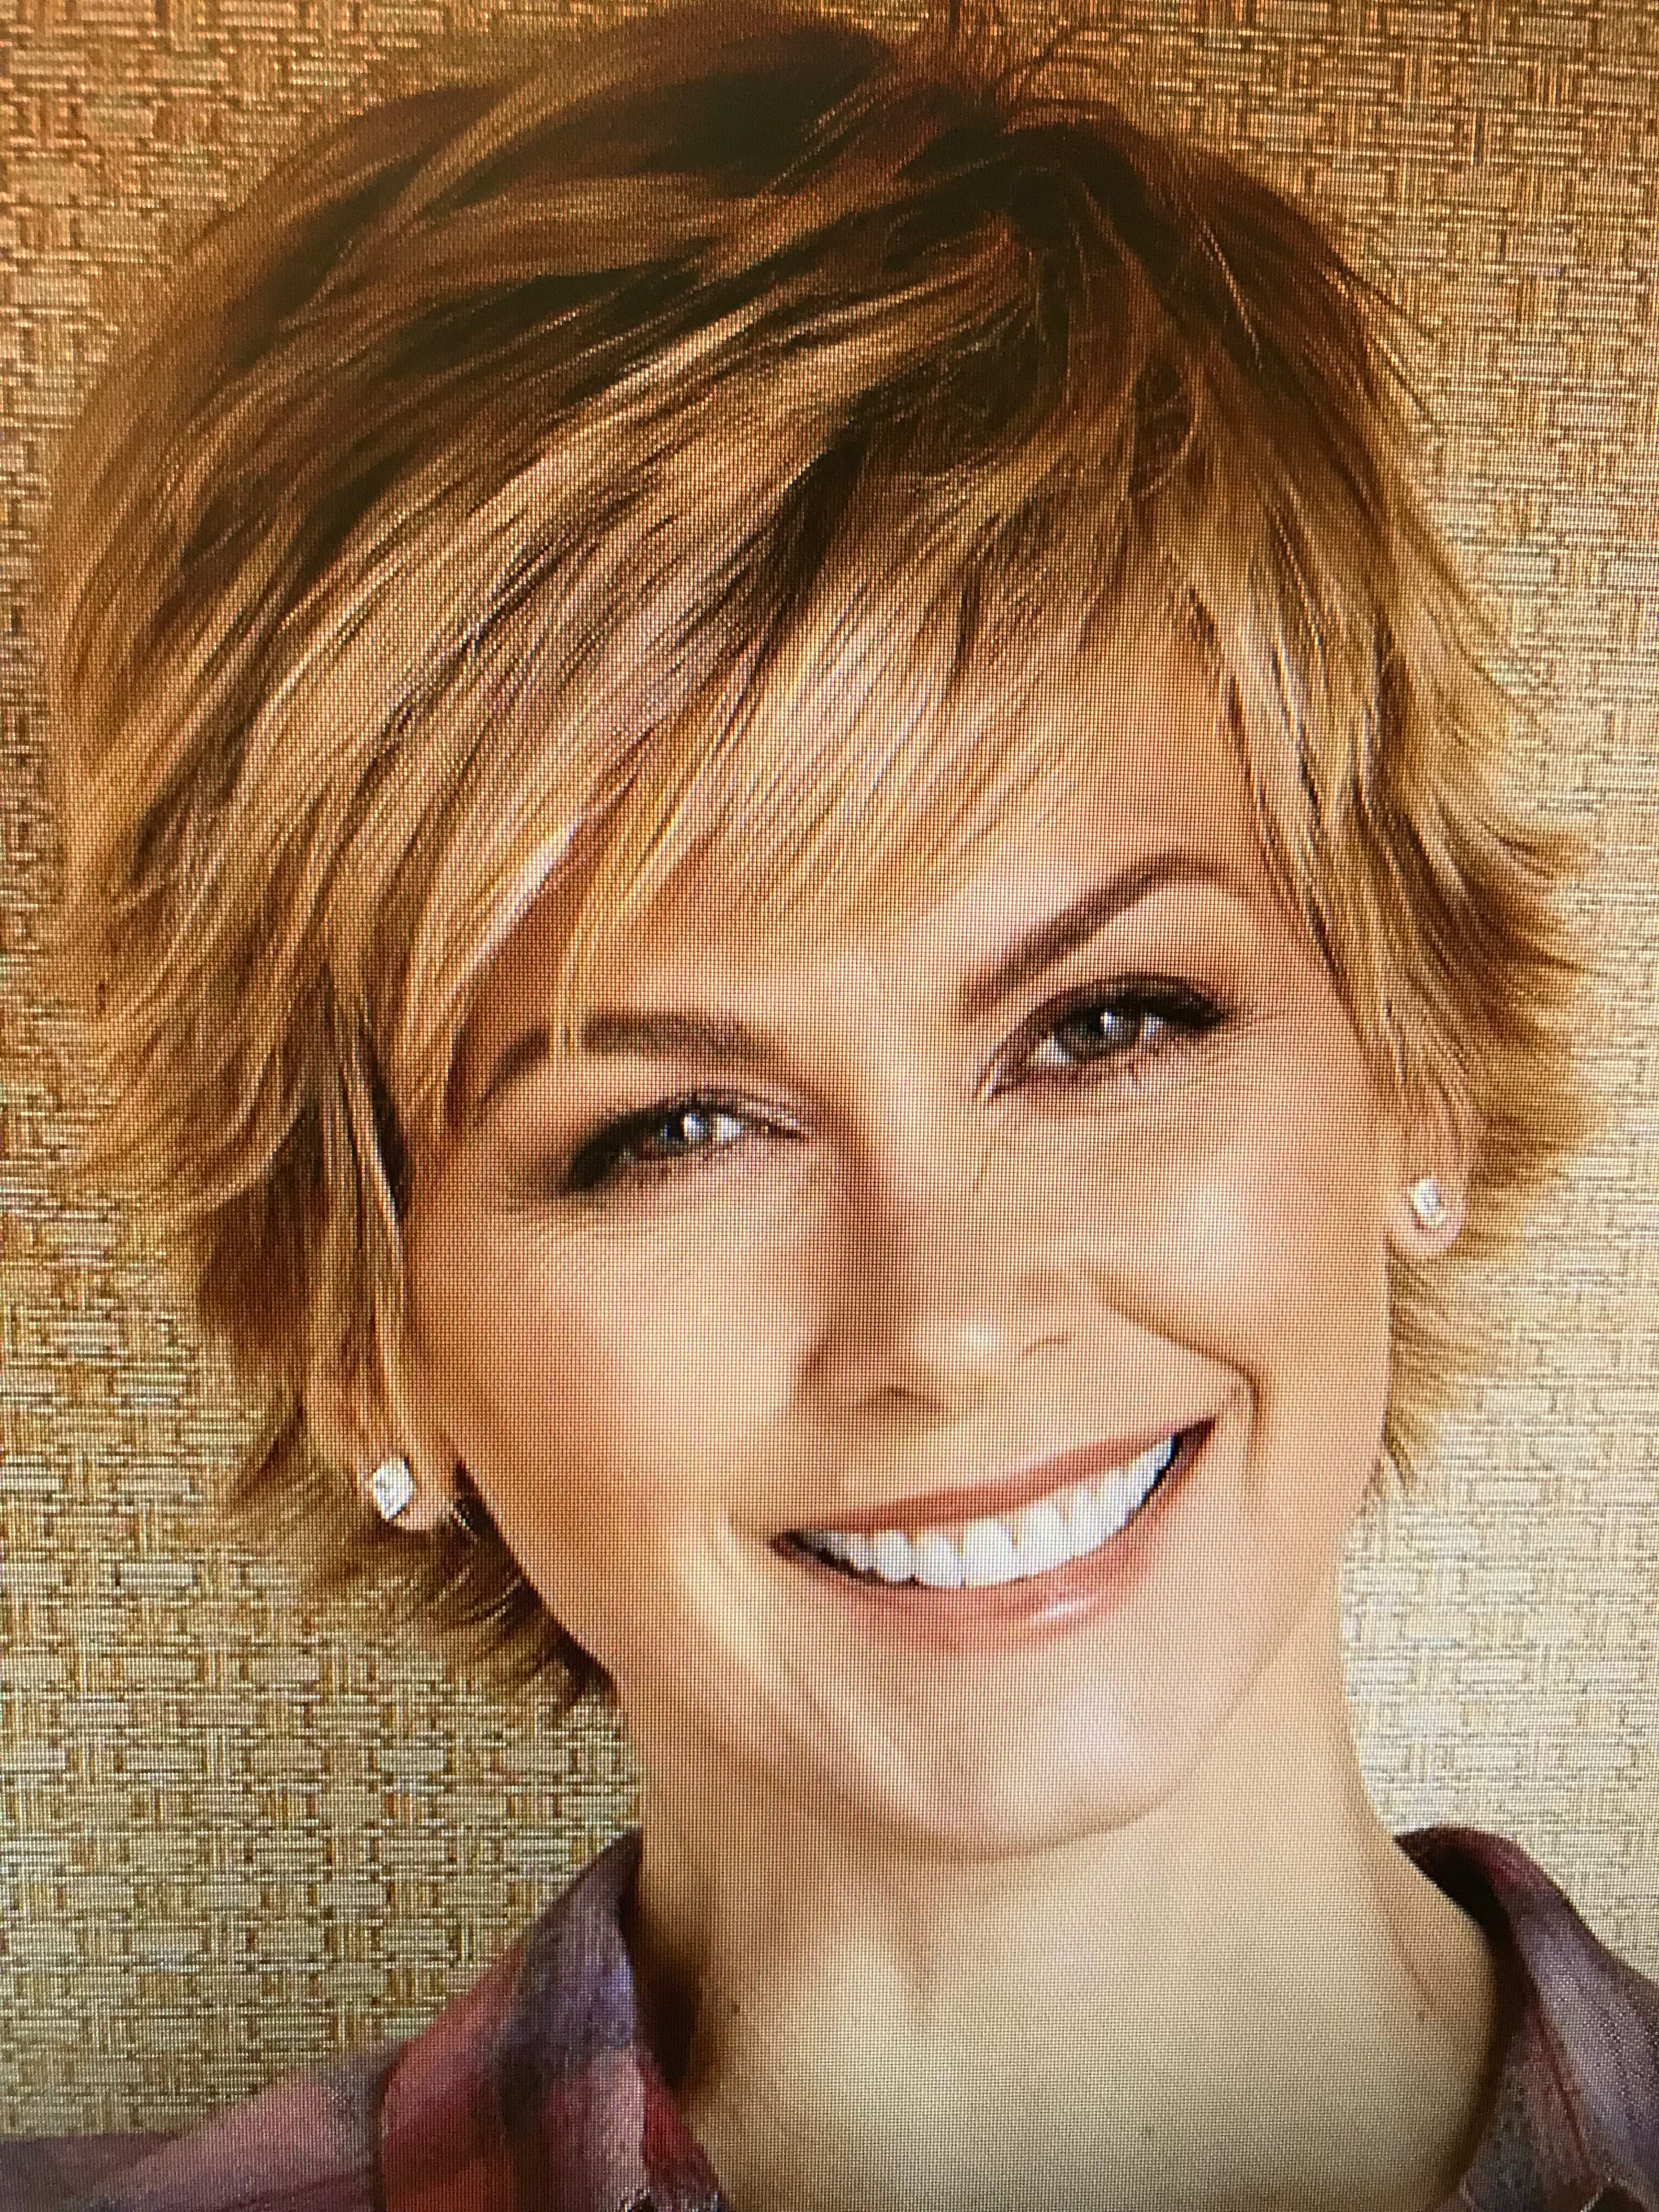 Pin by andrea zsolnay on minden pinterest hair style haircuts